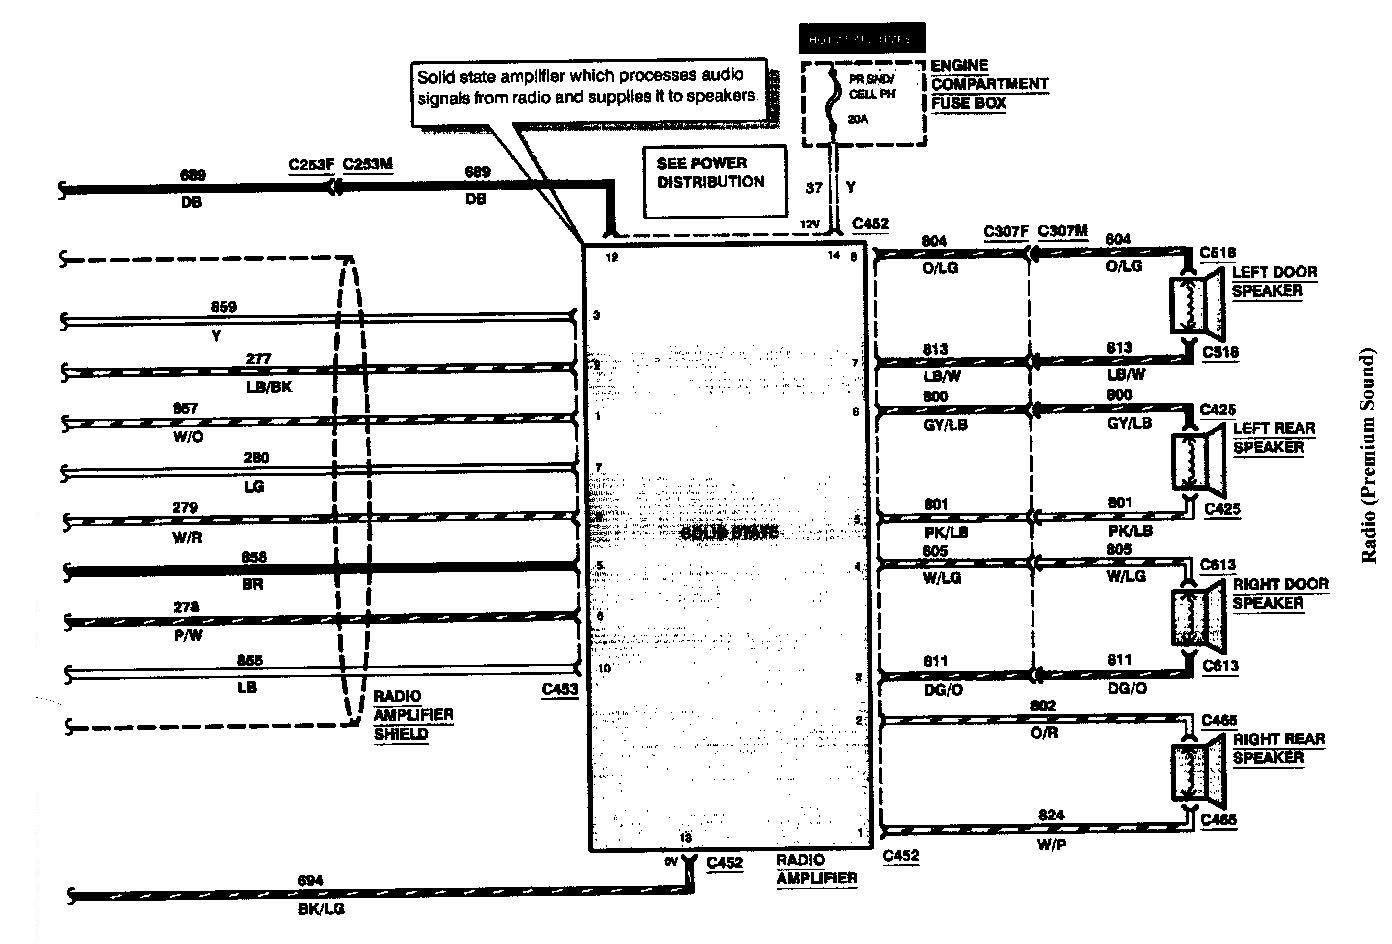 95Mark8 Premium Sound Wiring2 95 mark 8 jbl wiring diagram needed lincolns online message forum 1994 lincoln town car wiring diagram at edmiracle.co